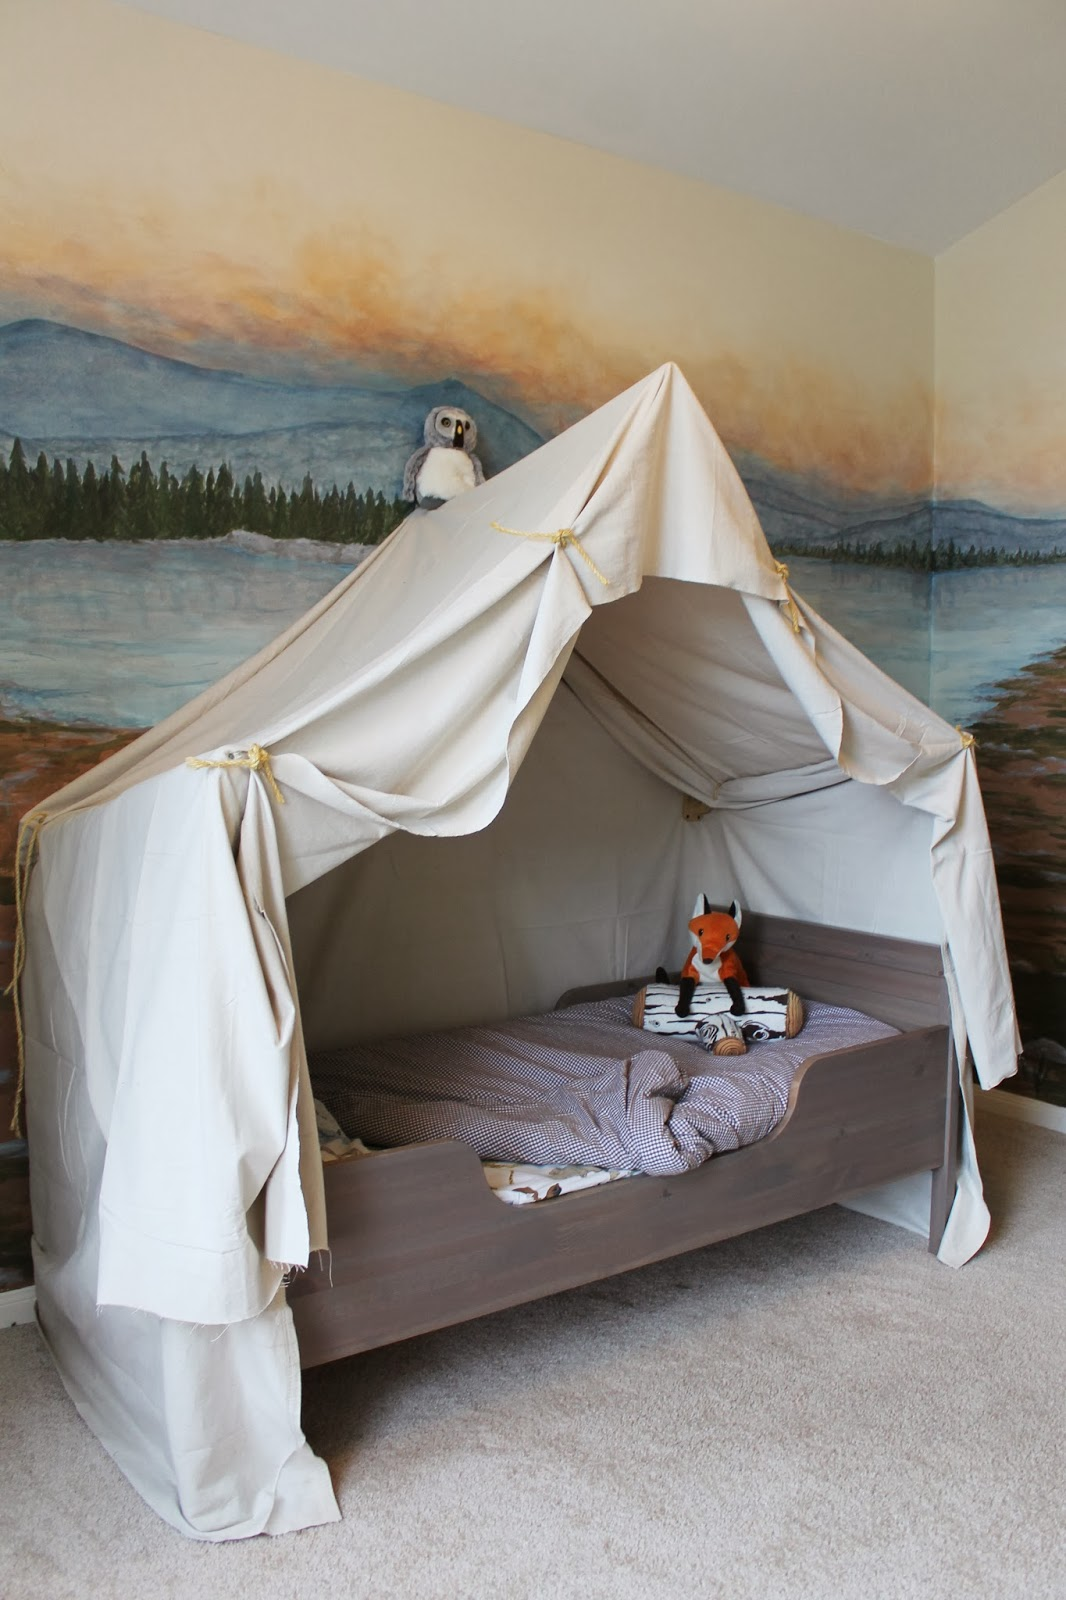 Camping Beds For Tents >> Remodelaholic | Camping Tent Bed in a Kid's Woodland Bedroom